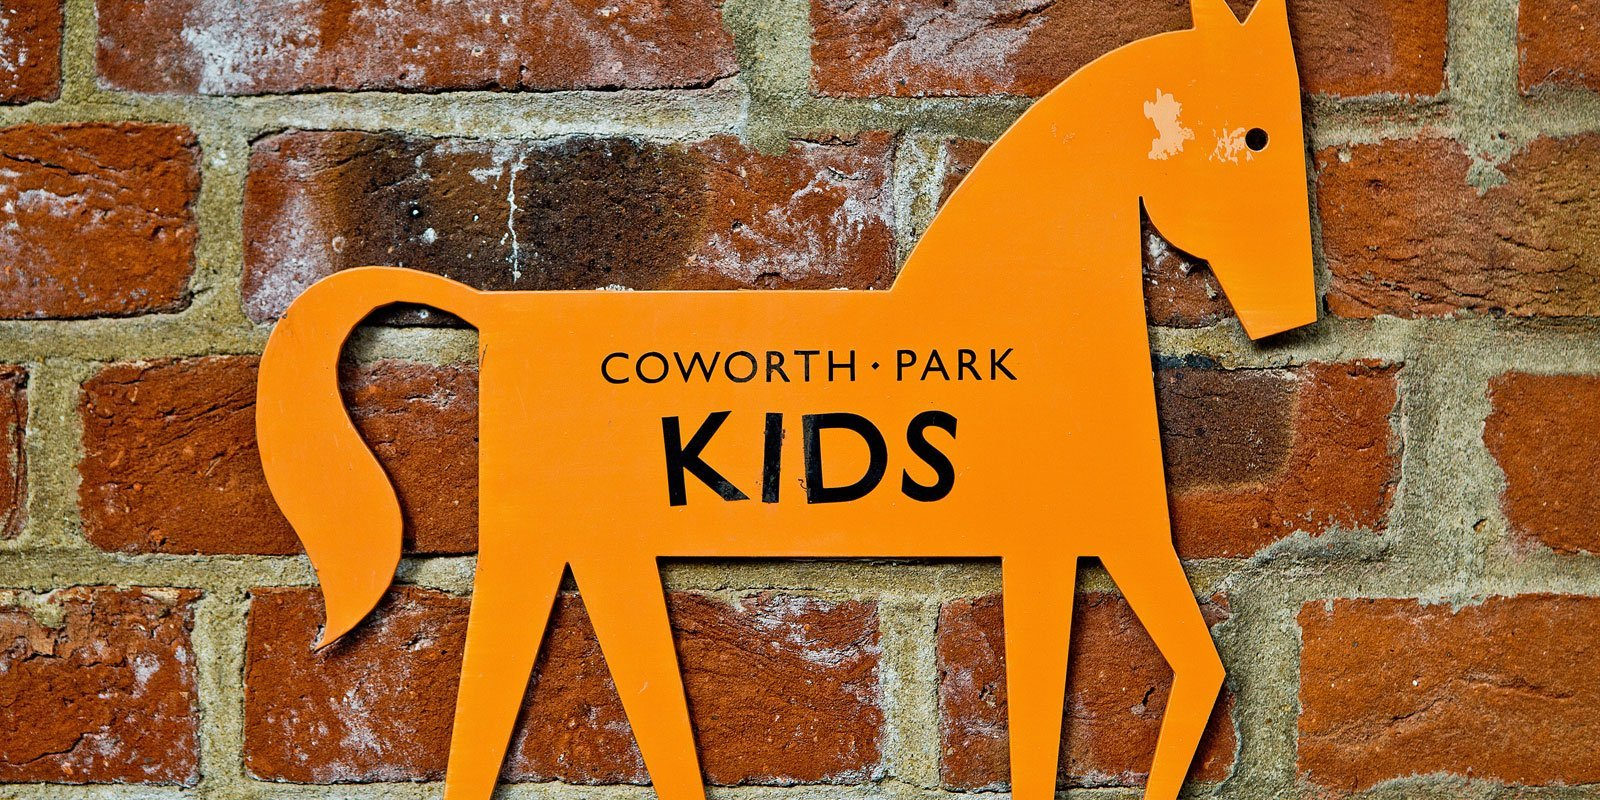 Coworth Park Kids is a converted 4 bedroom house with seven different rooms equipped to keep children of all ages entertained